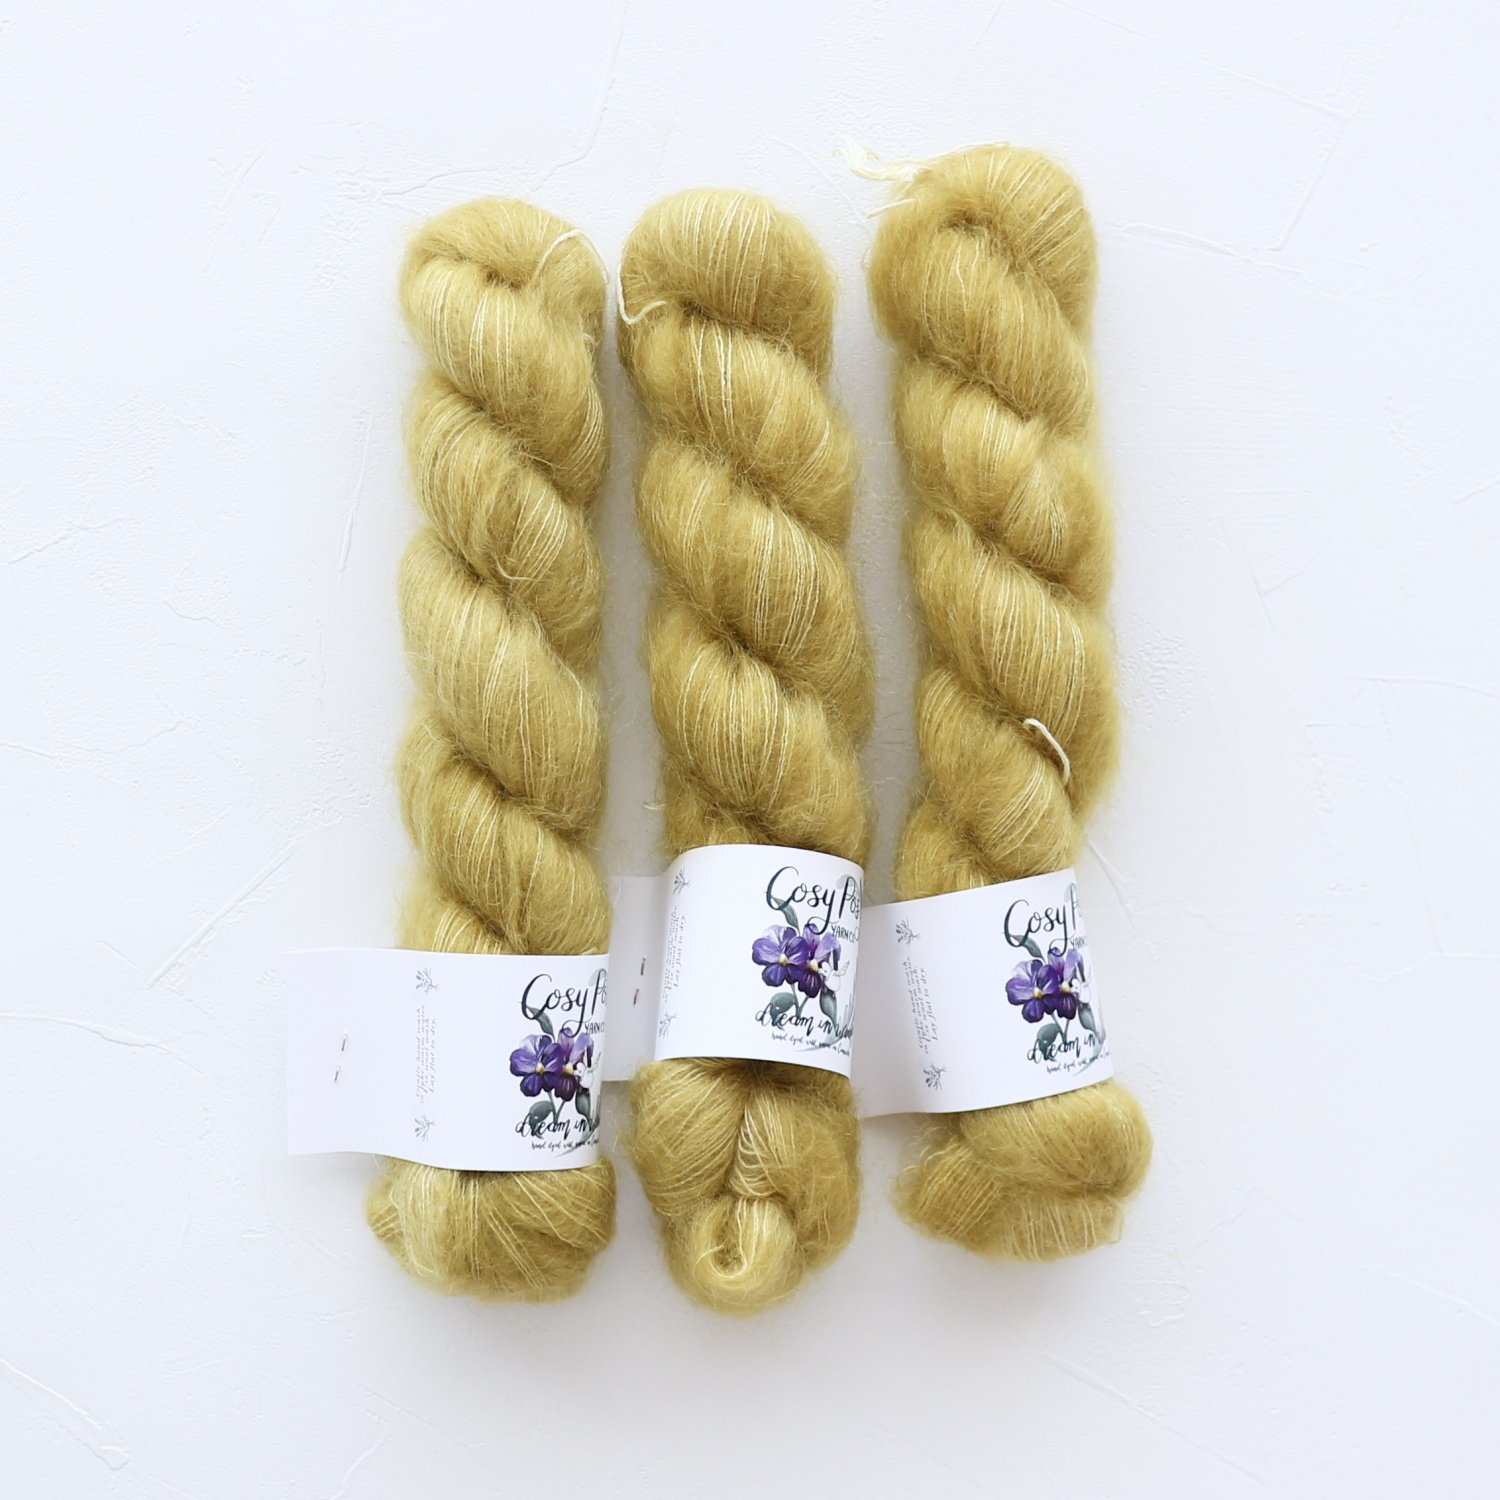 【Cosy Posy Yarn】<br>FLOOF<br>Kelly's green